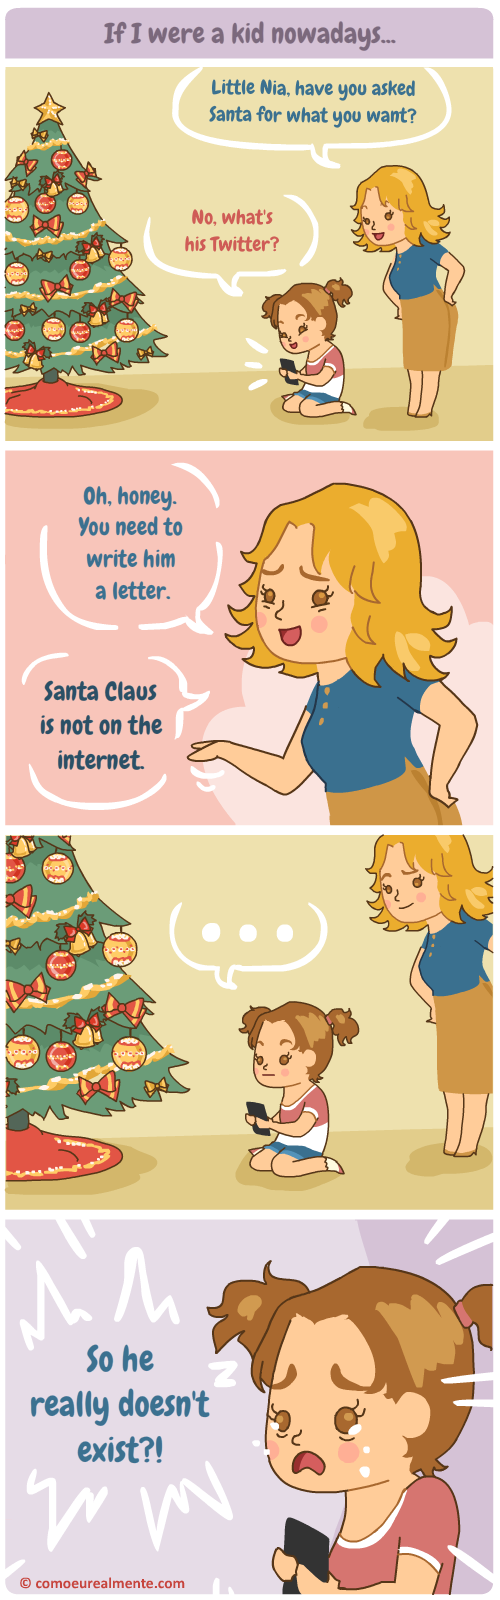 If I were a millennial child, this is how I would find out that Santa doesn't exist - by finding out he's not on the internet